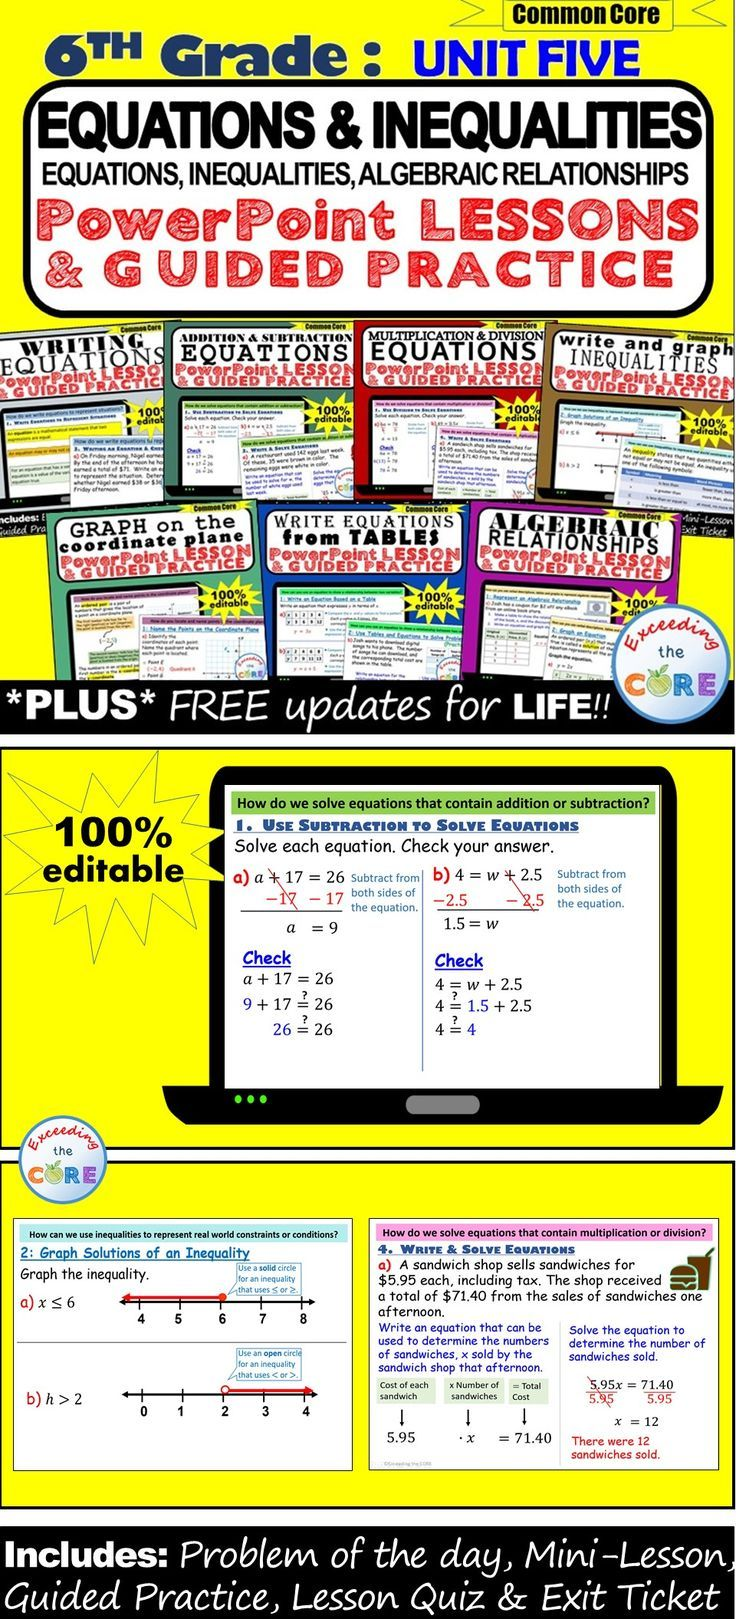 Equations inequalities 6th grade powerpoint lessons